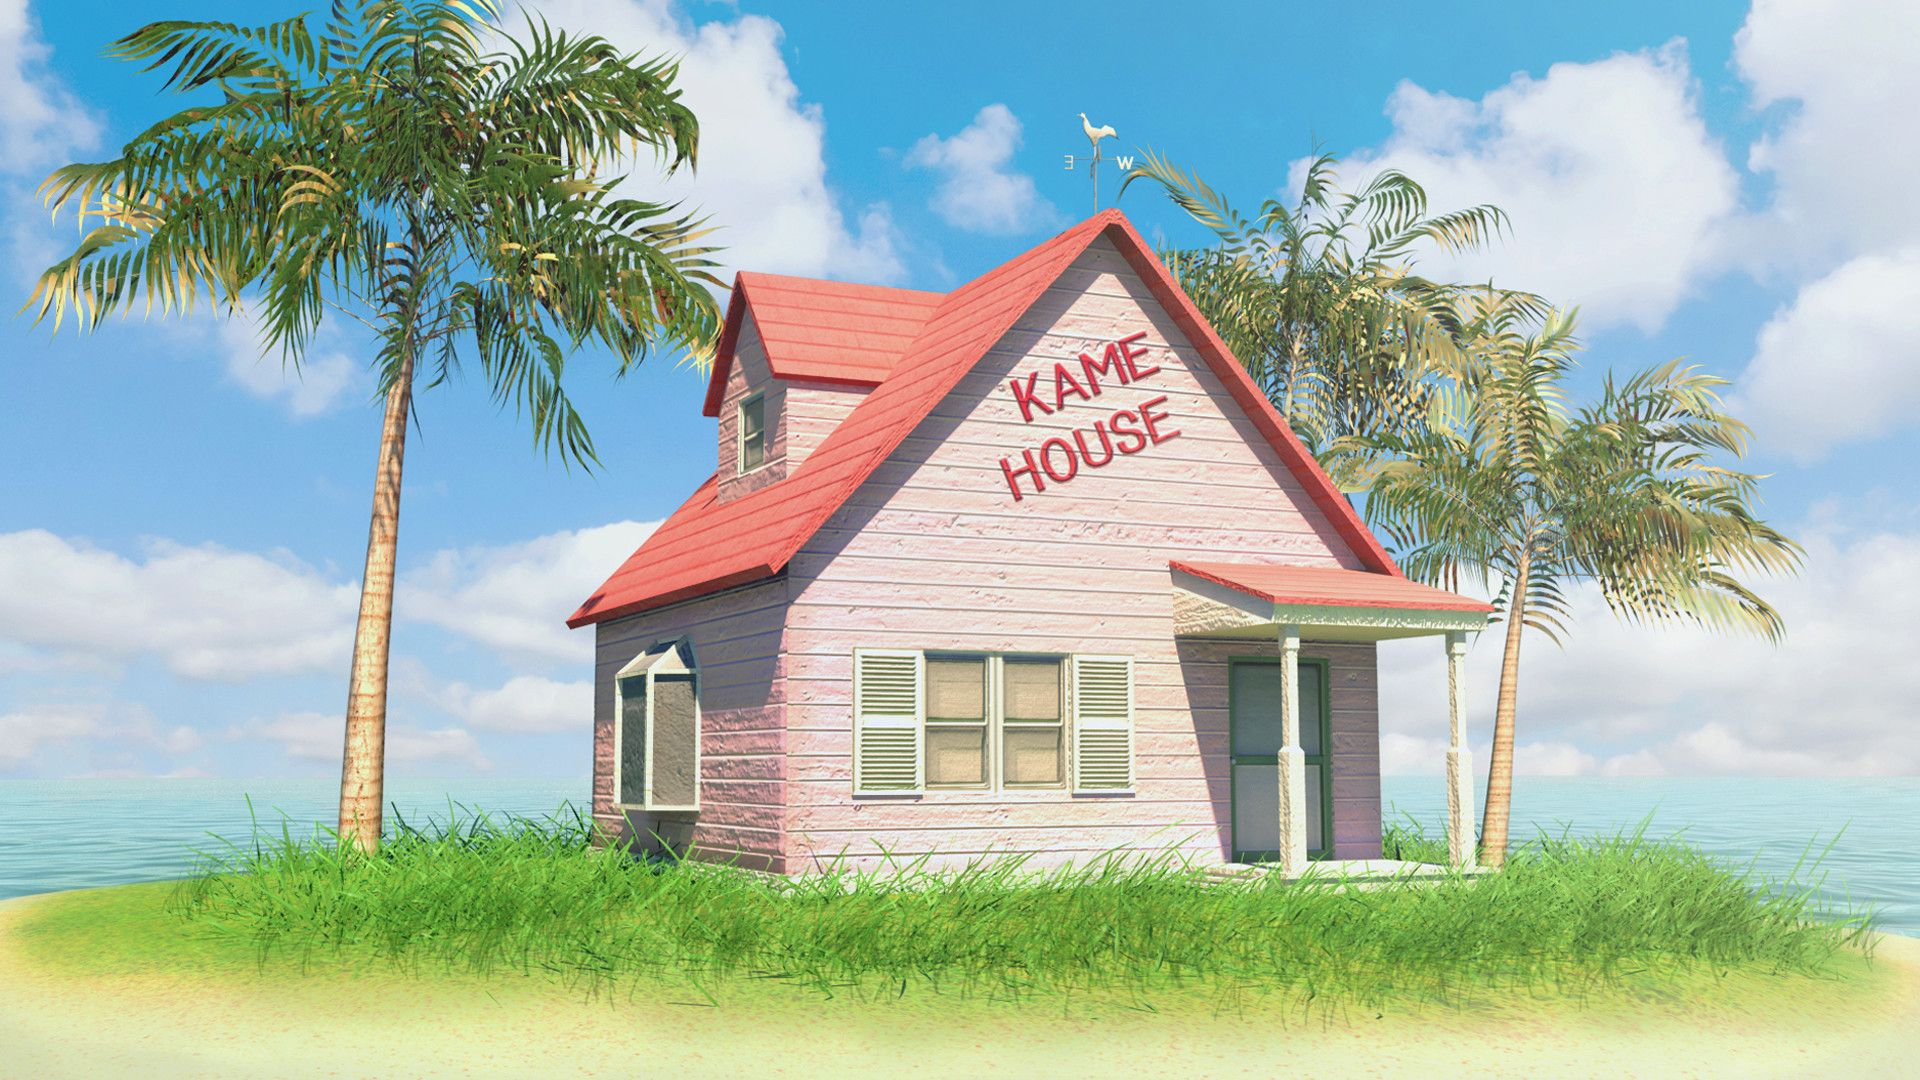 Kame House Wallpapers - Top Free Kame House Backgrounds ...